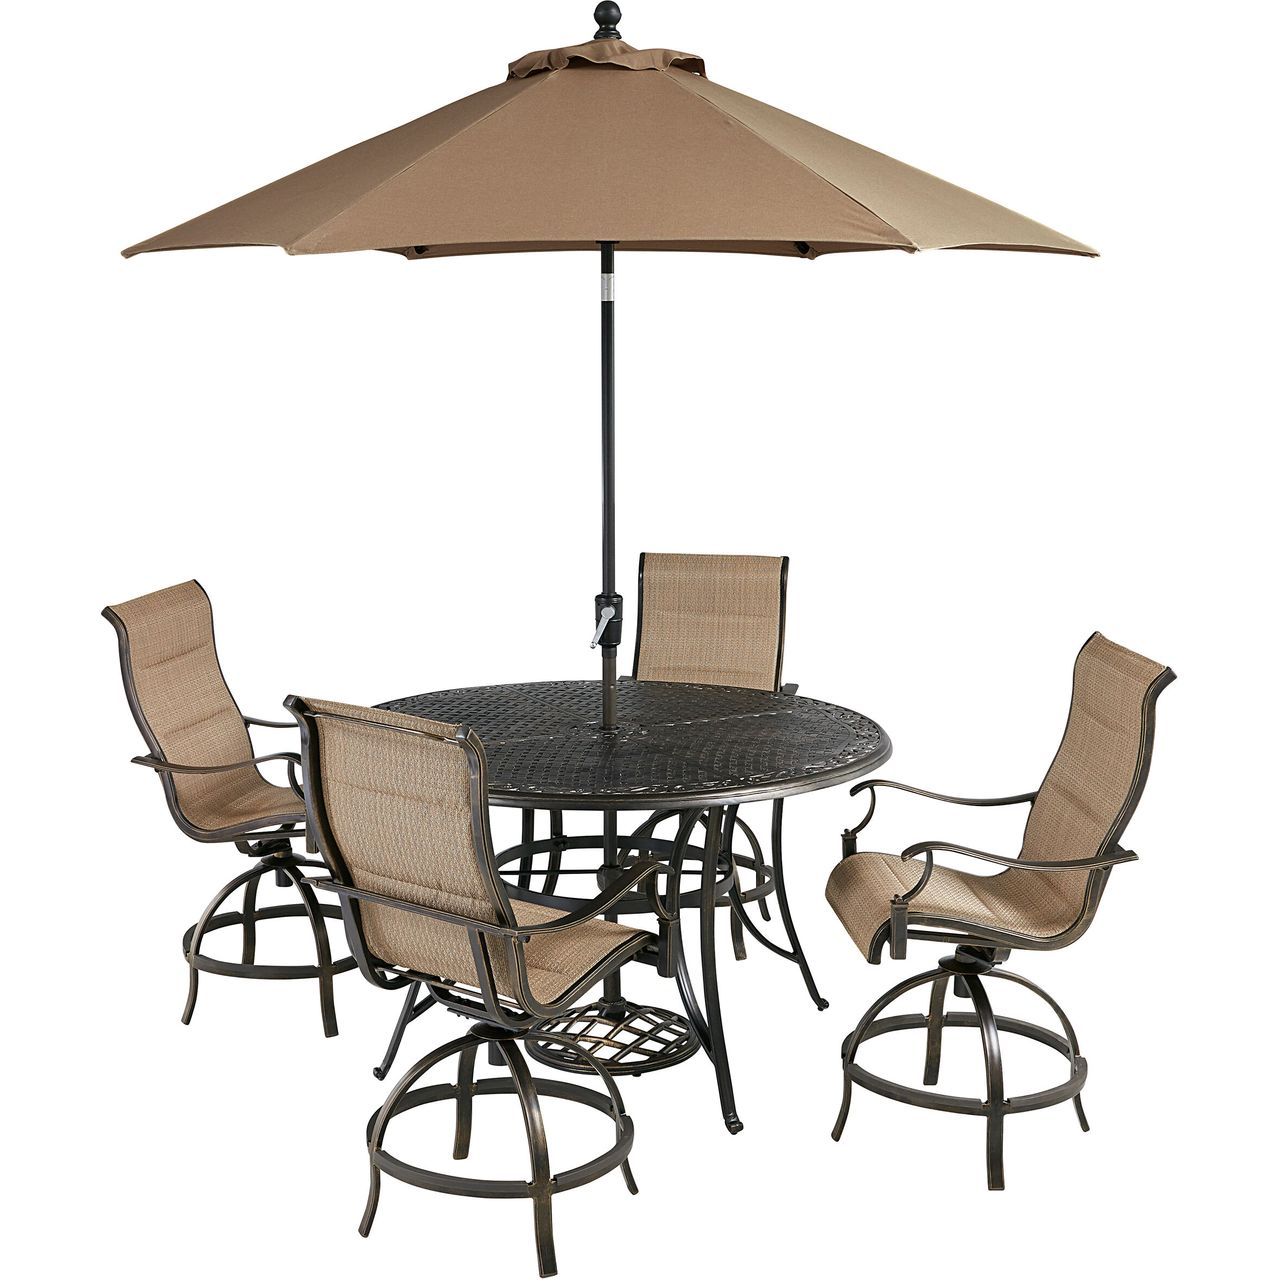 """Hanover Traditions 5-Pc 56"""" High-Dining Set With Tan Chairs/Umbrella"""